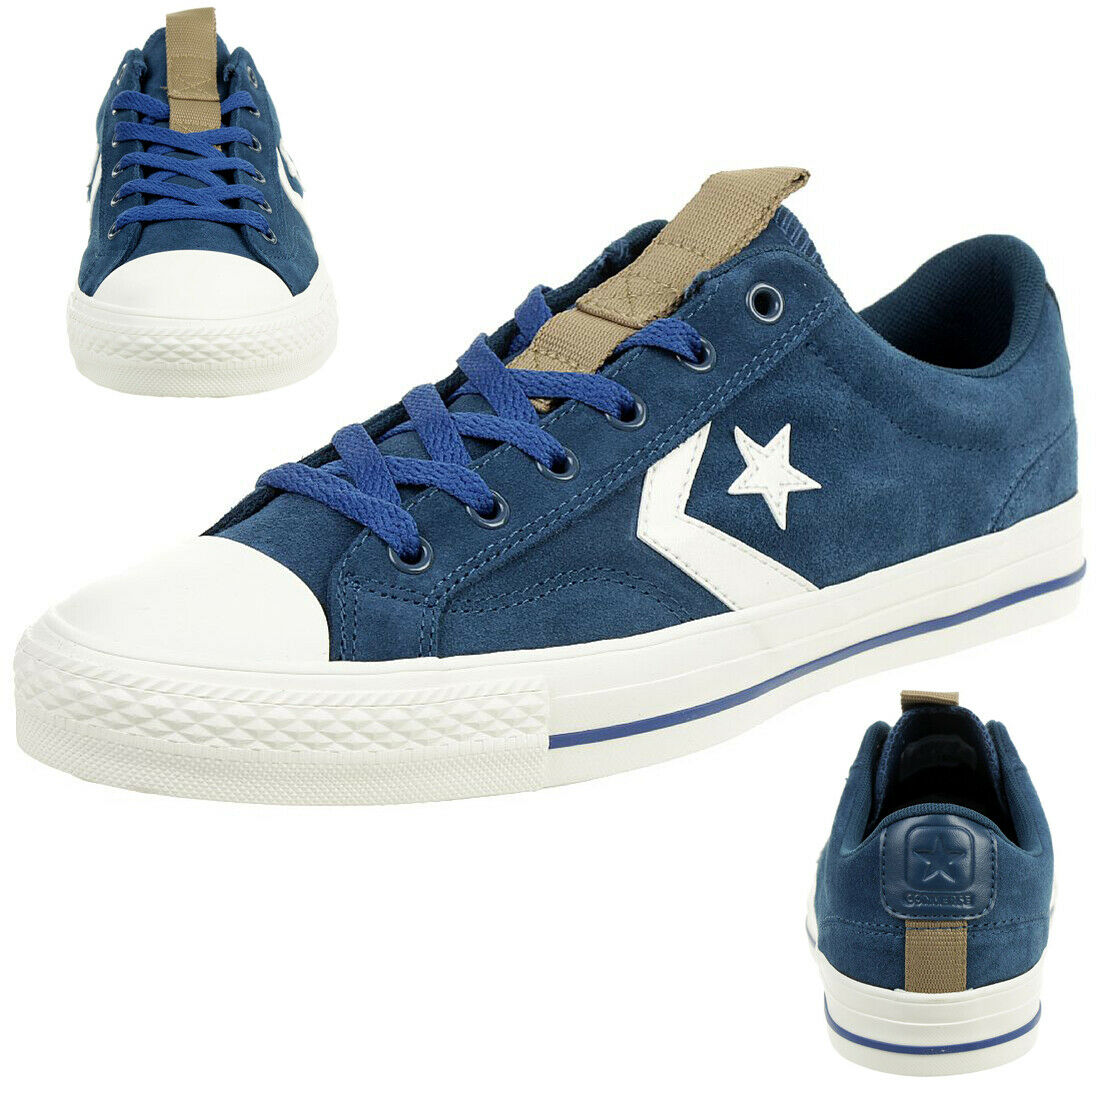 Converse Star Player Ox Shoes Trainers Suede Blue 162569C | eBay